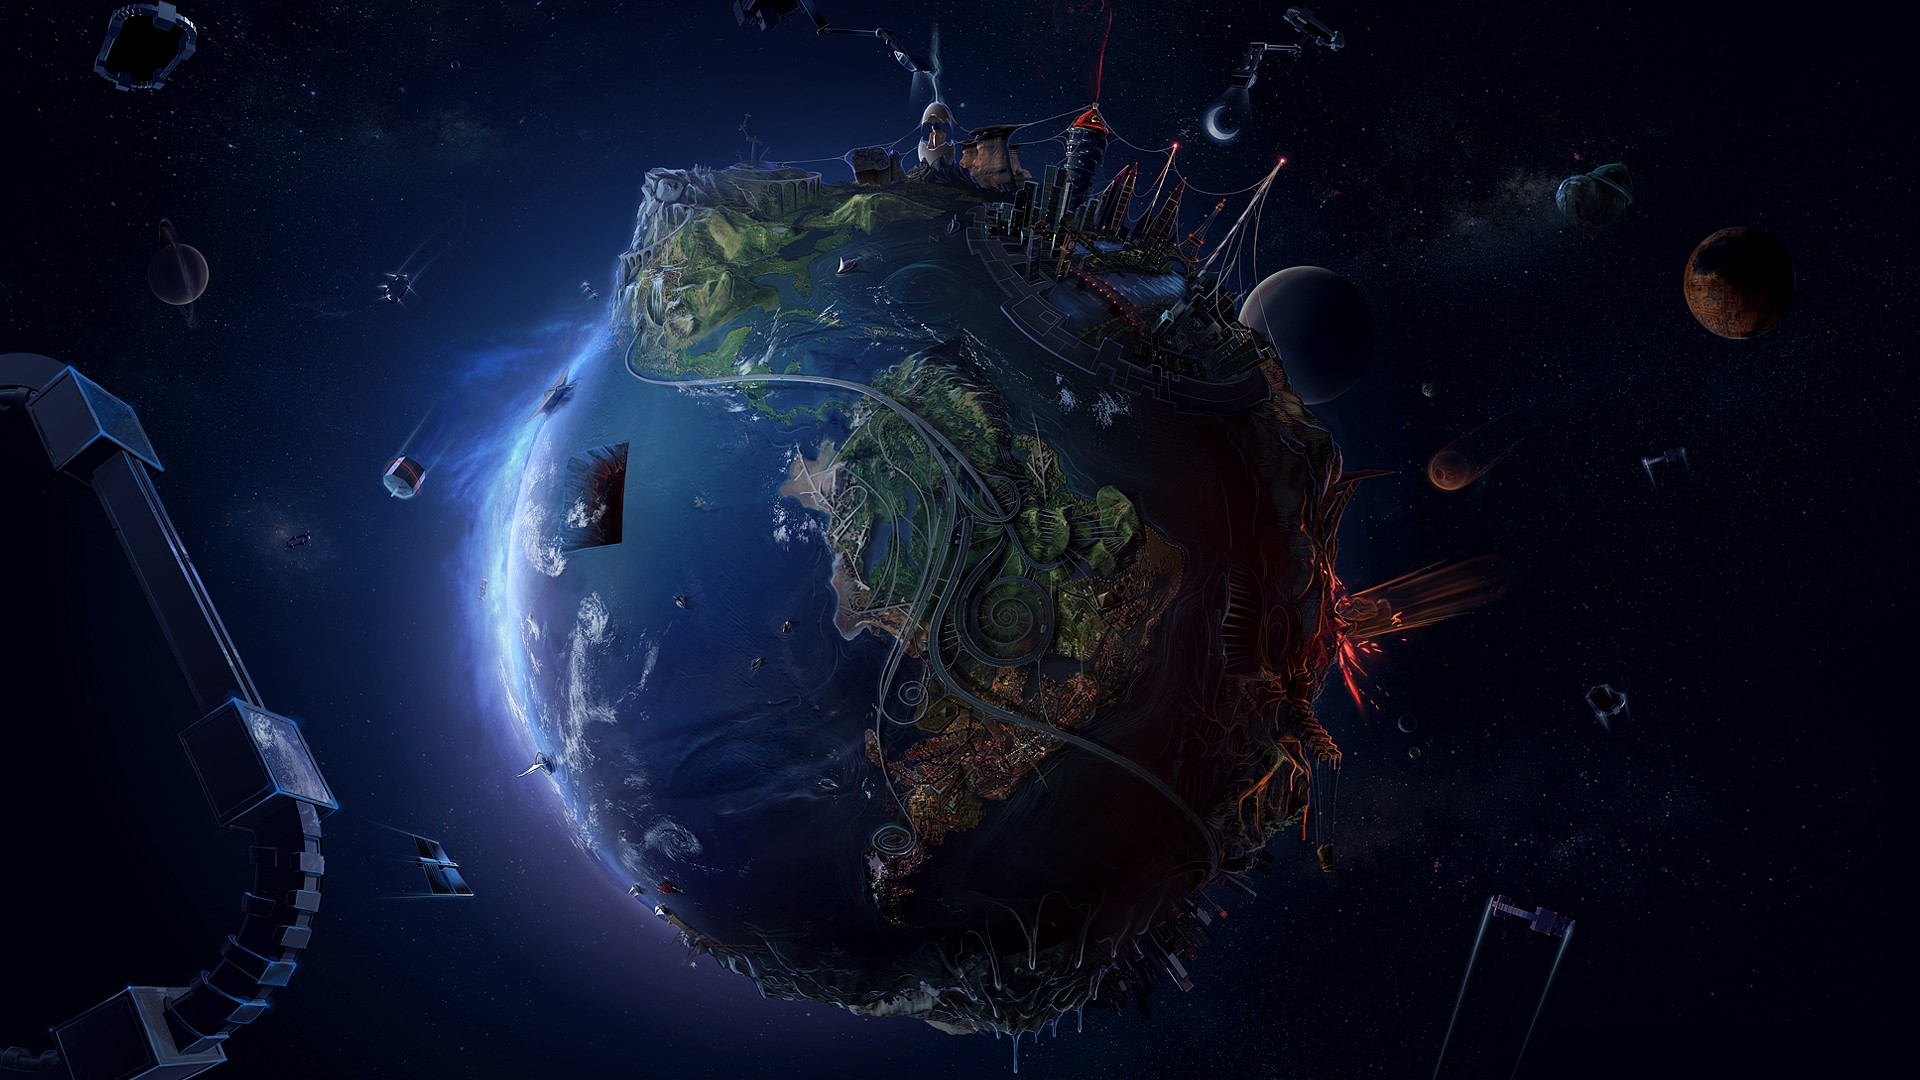 Cool Pictures Earth Space HD Wallpaper of Galaxy   hdwallpaper2013com 1920x1080